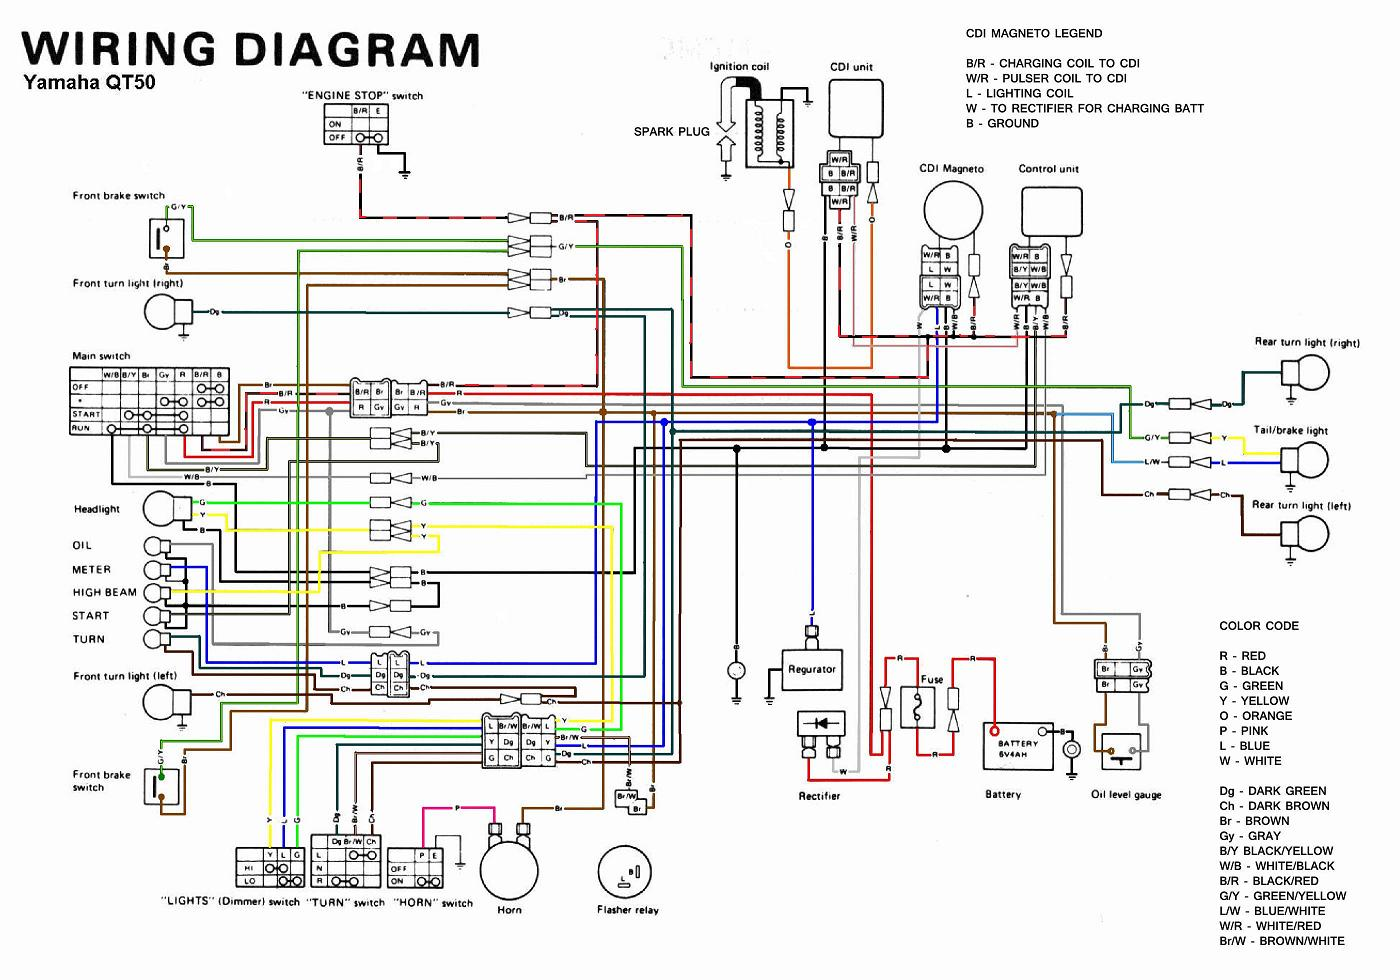 Wiring Diagrams Yamaha Atv : Cc motorcycle wiring diagram images